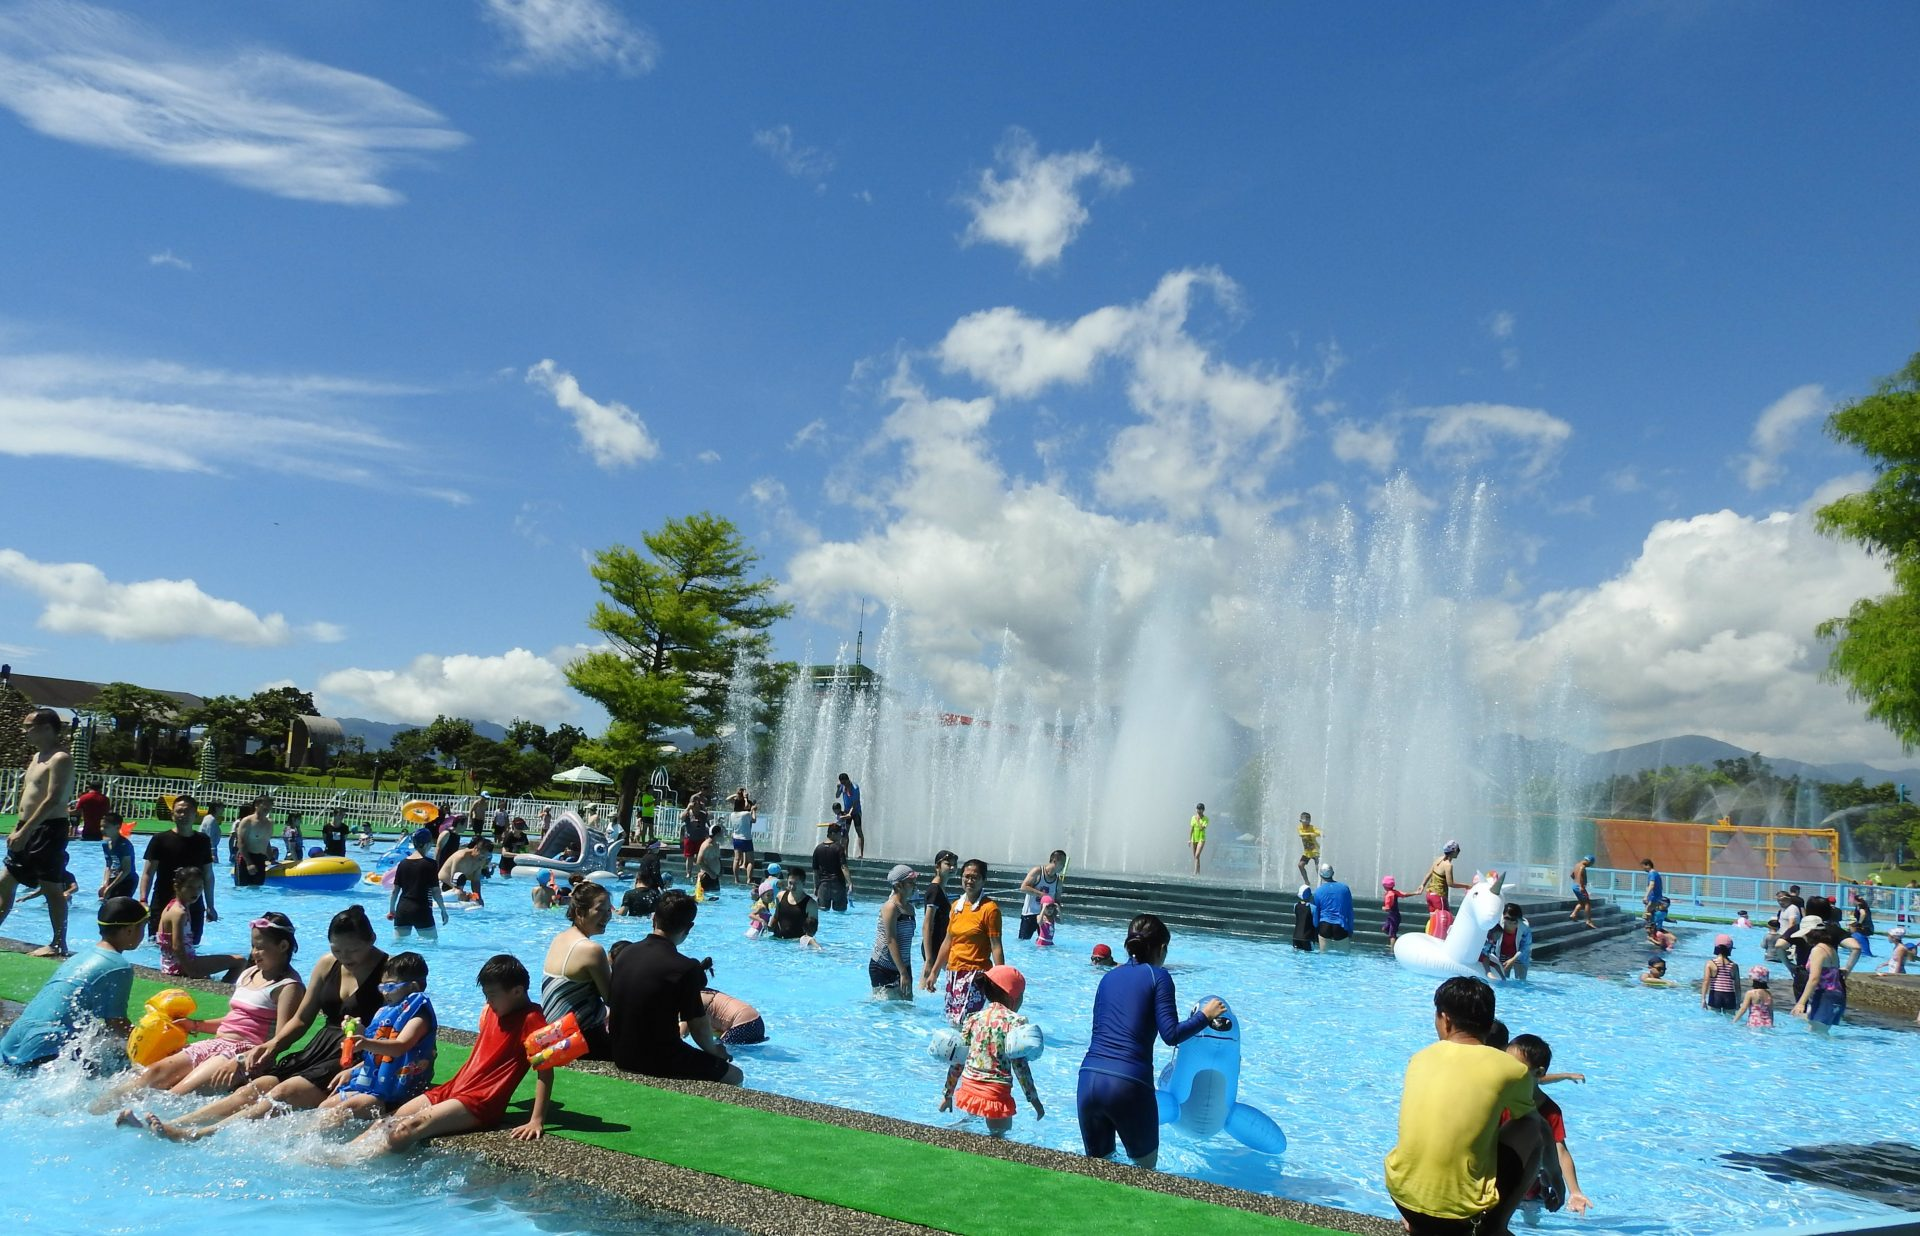 Kids are enjoying in the exciting water park at the Yilan International Children's Folklore and Folkgame Festival. (Image: Billy Shyu/ Vision Times)